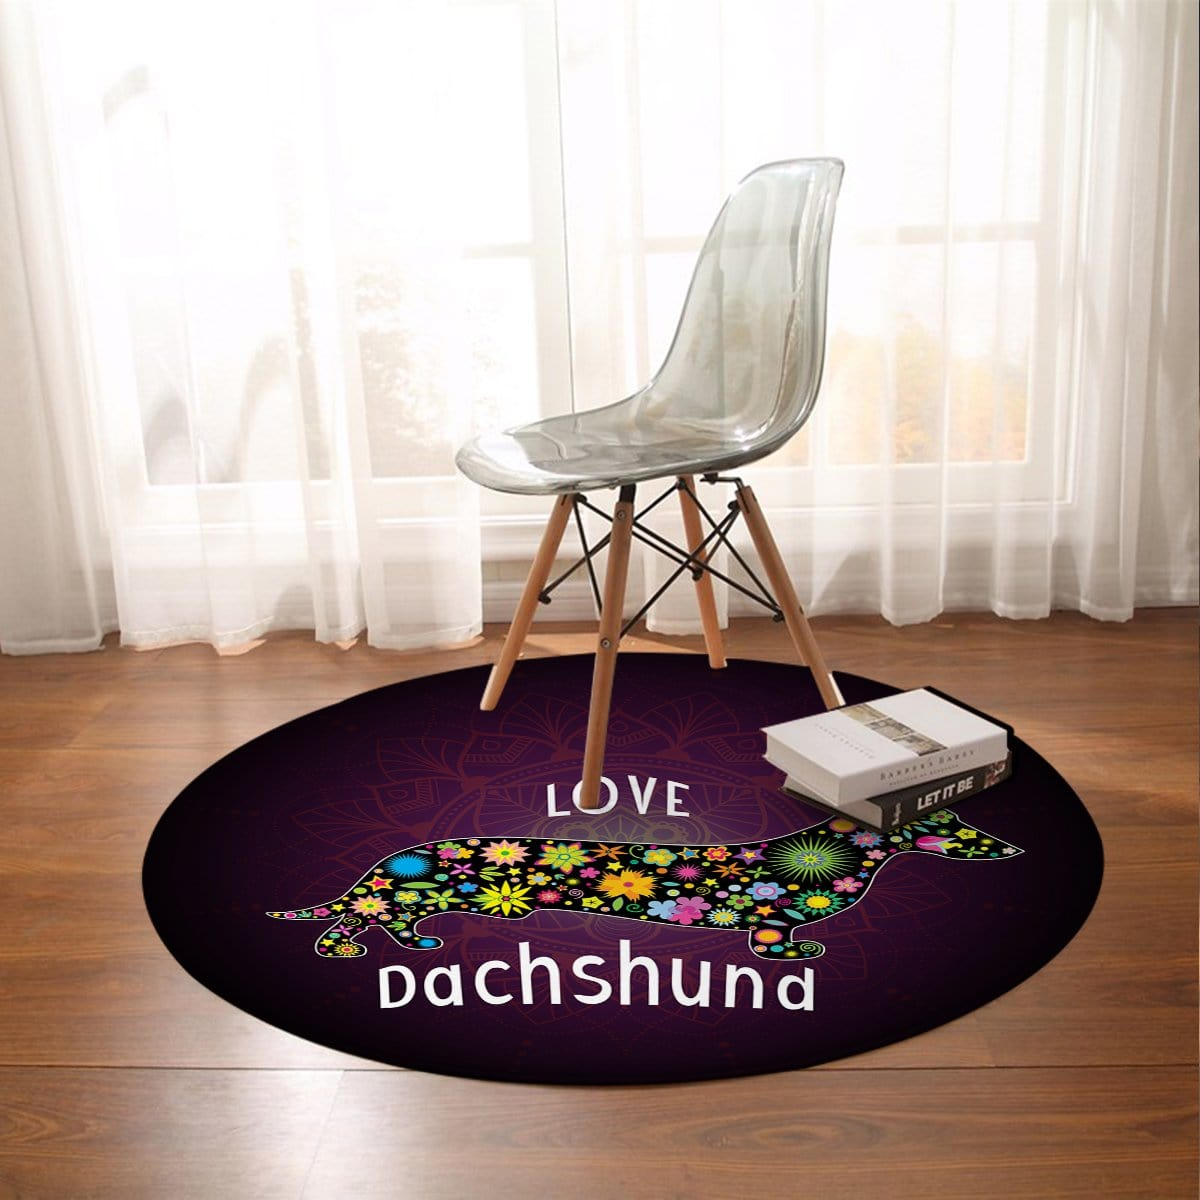 Dachshund Love Round Mat-Dachshund Love-Little Squiffy